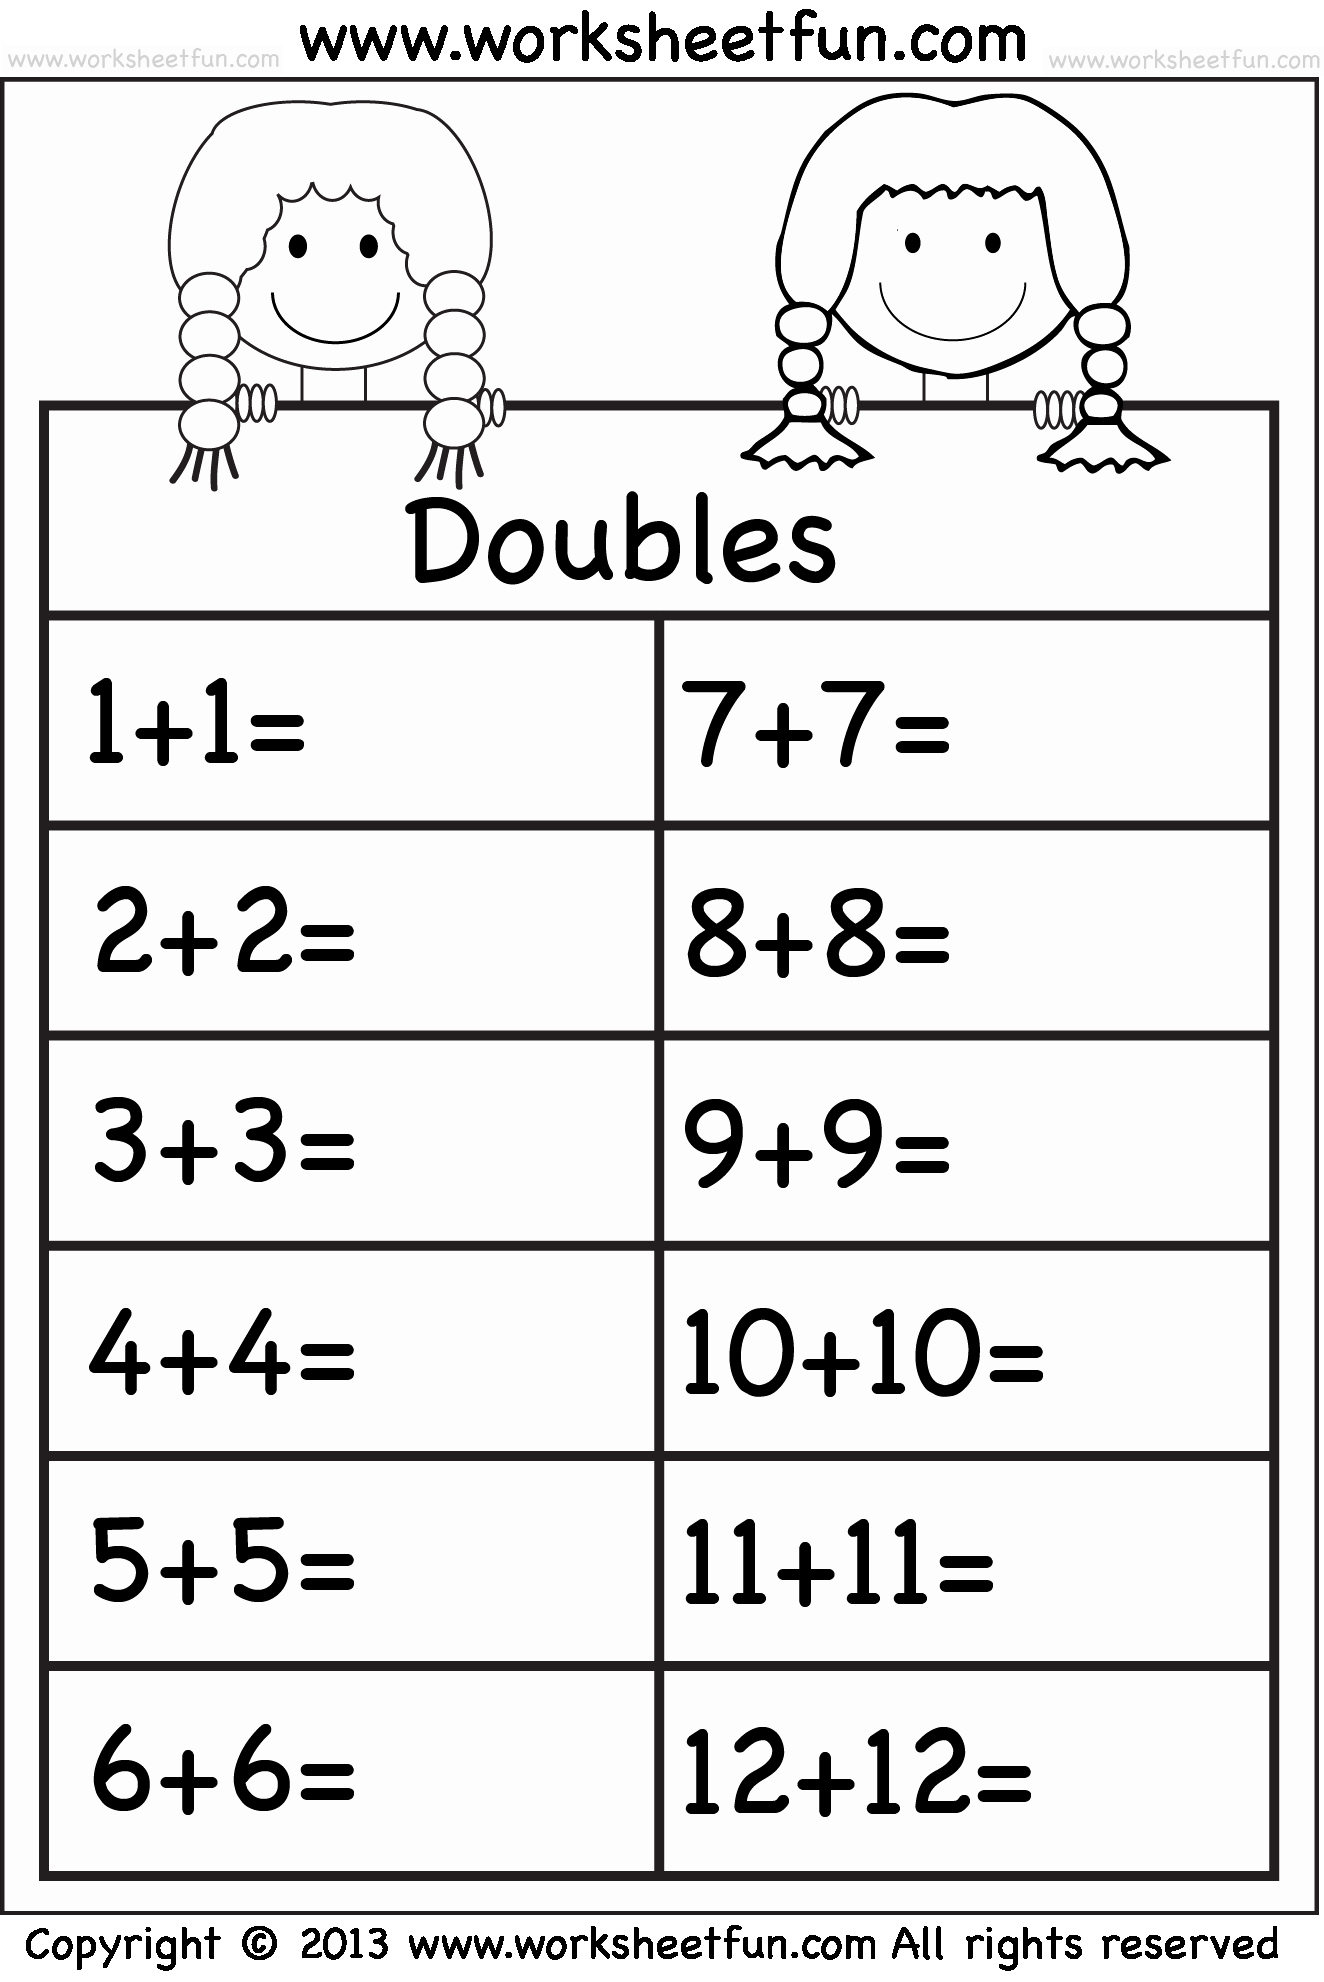 Doubles Addition Worksheet Inspirational Addition Doubles – 1 Worksheet Free Printable Worksheets